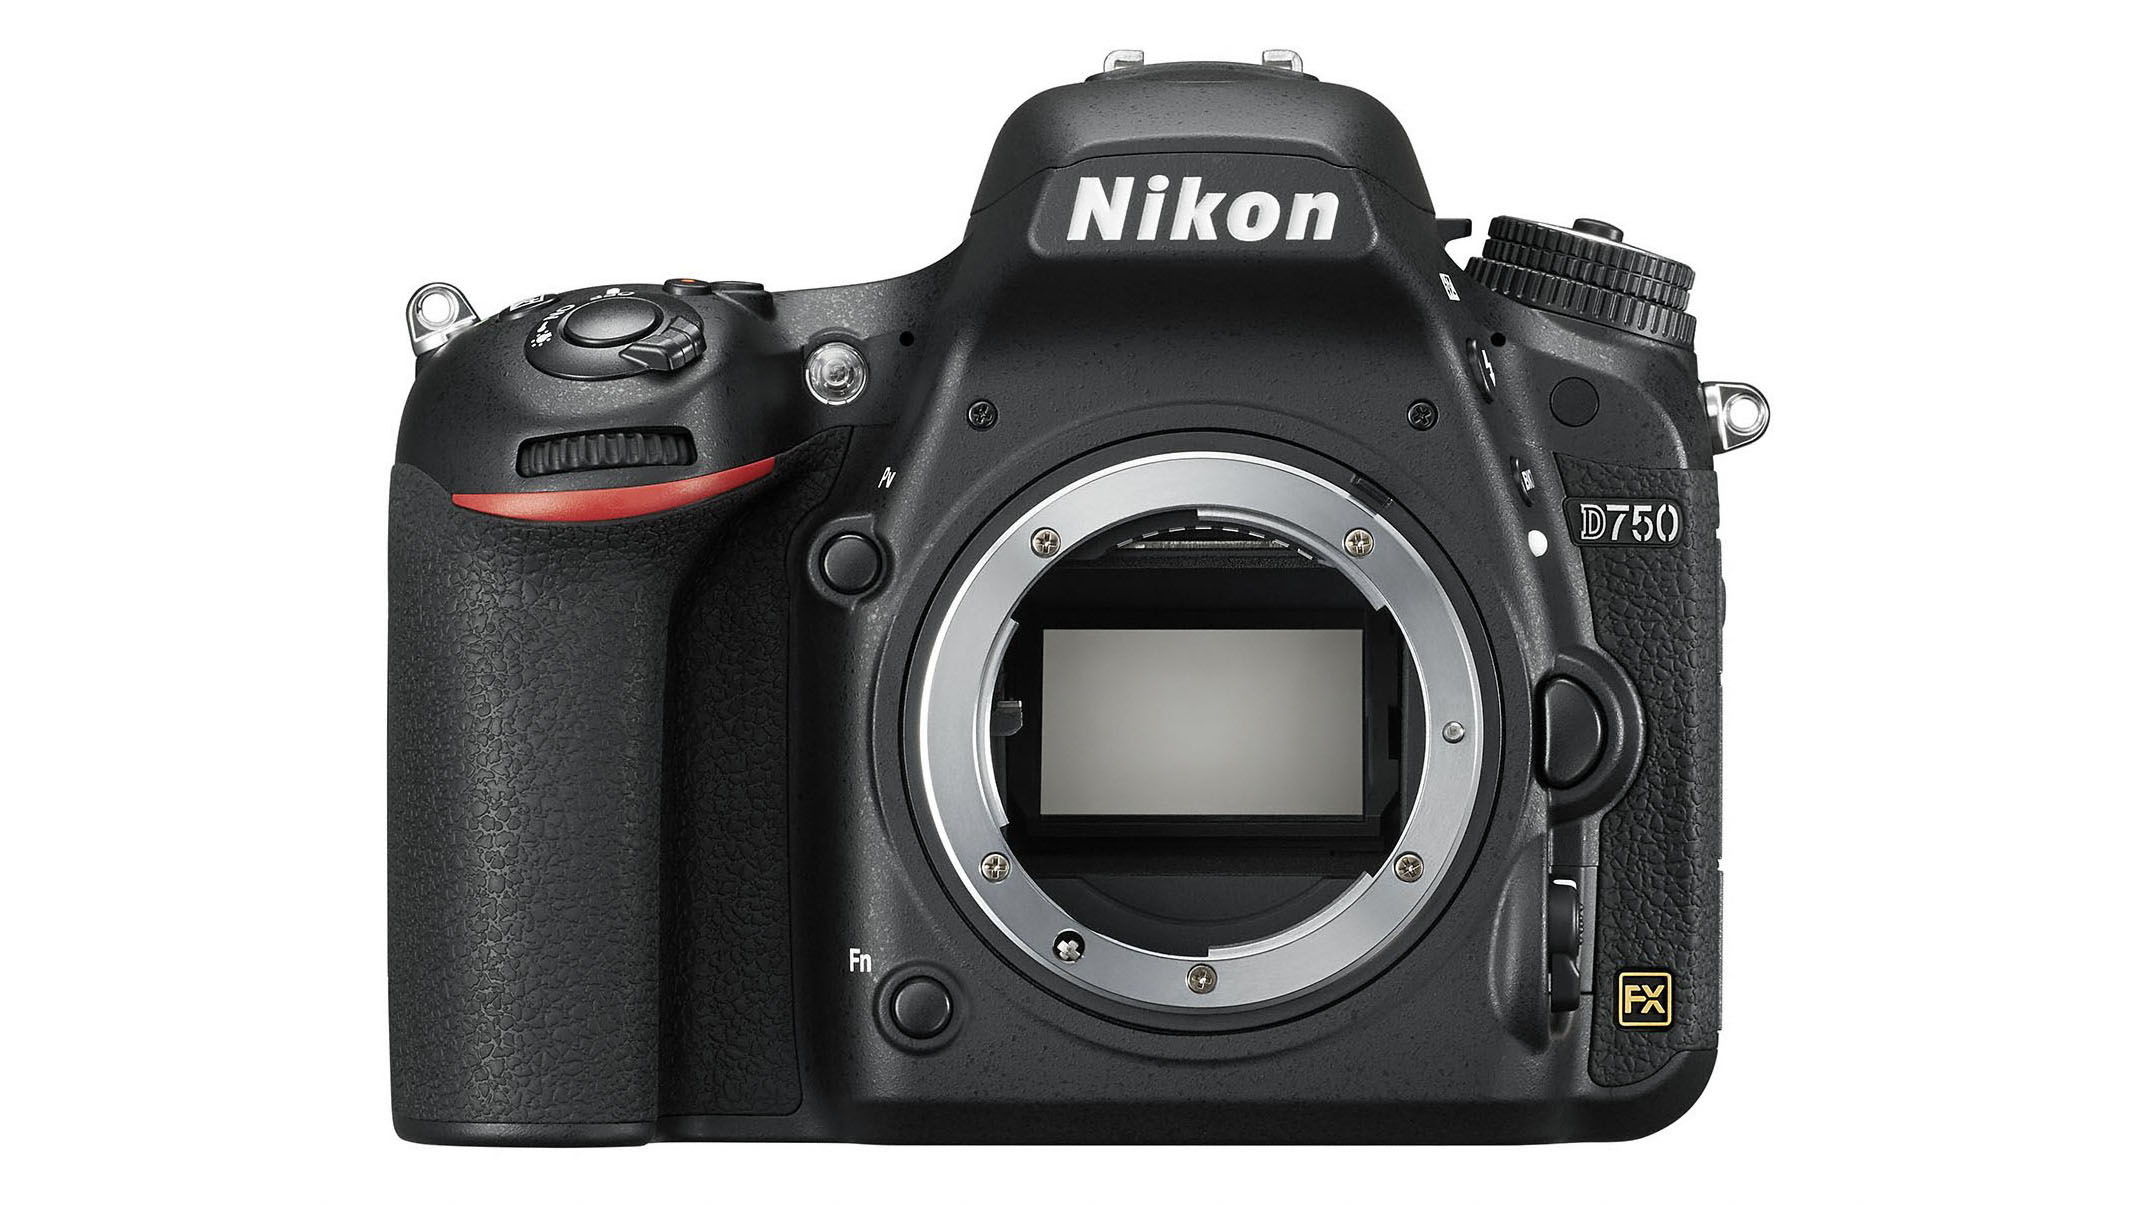 Nikon D760: huge hint reveals new camera set for 2019 launch